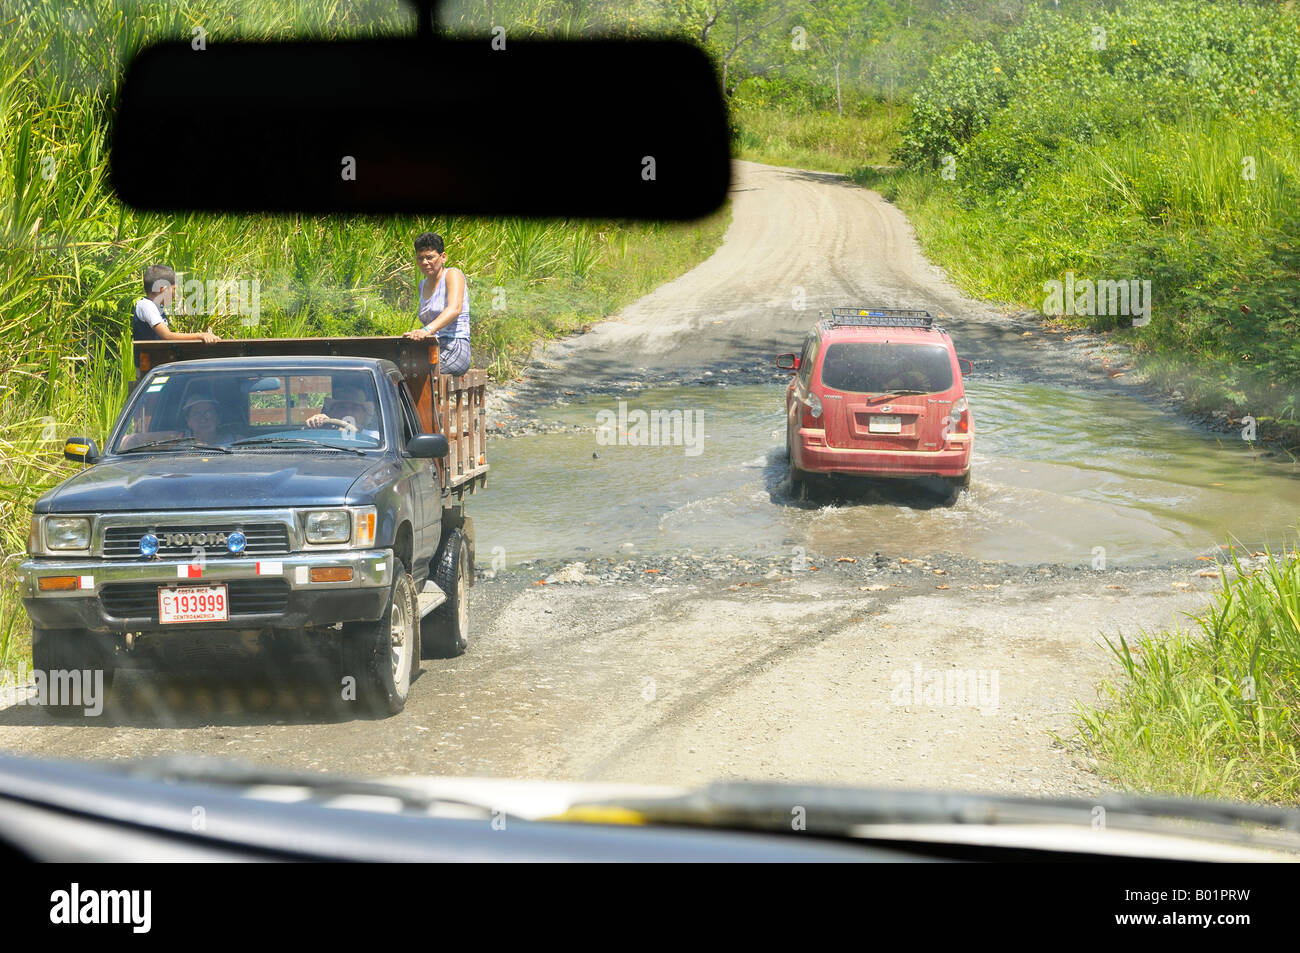 Taxis fording a stream on the Puerto Jimenez to Carate road in Costa Rica - Stock Image